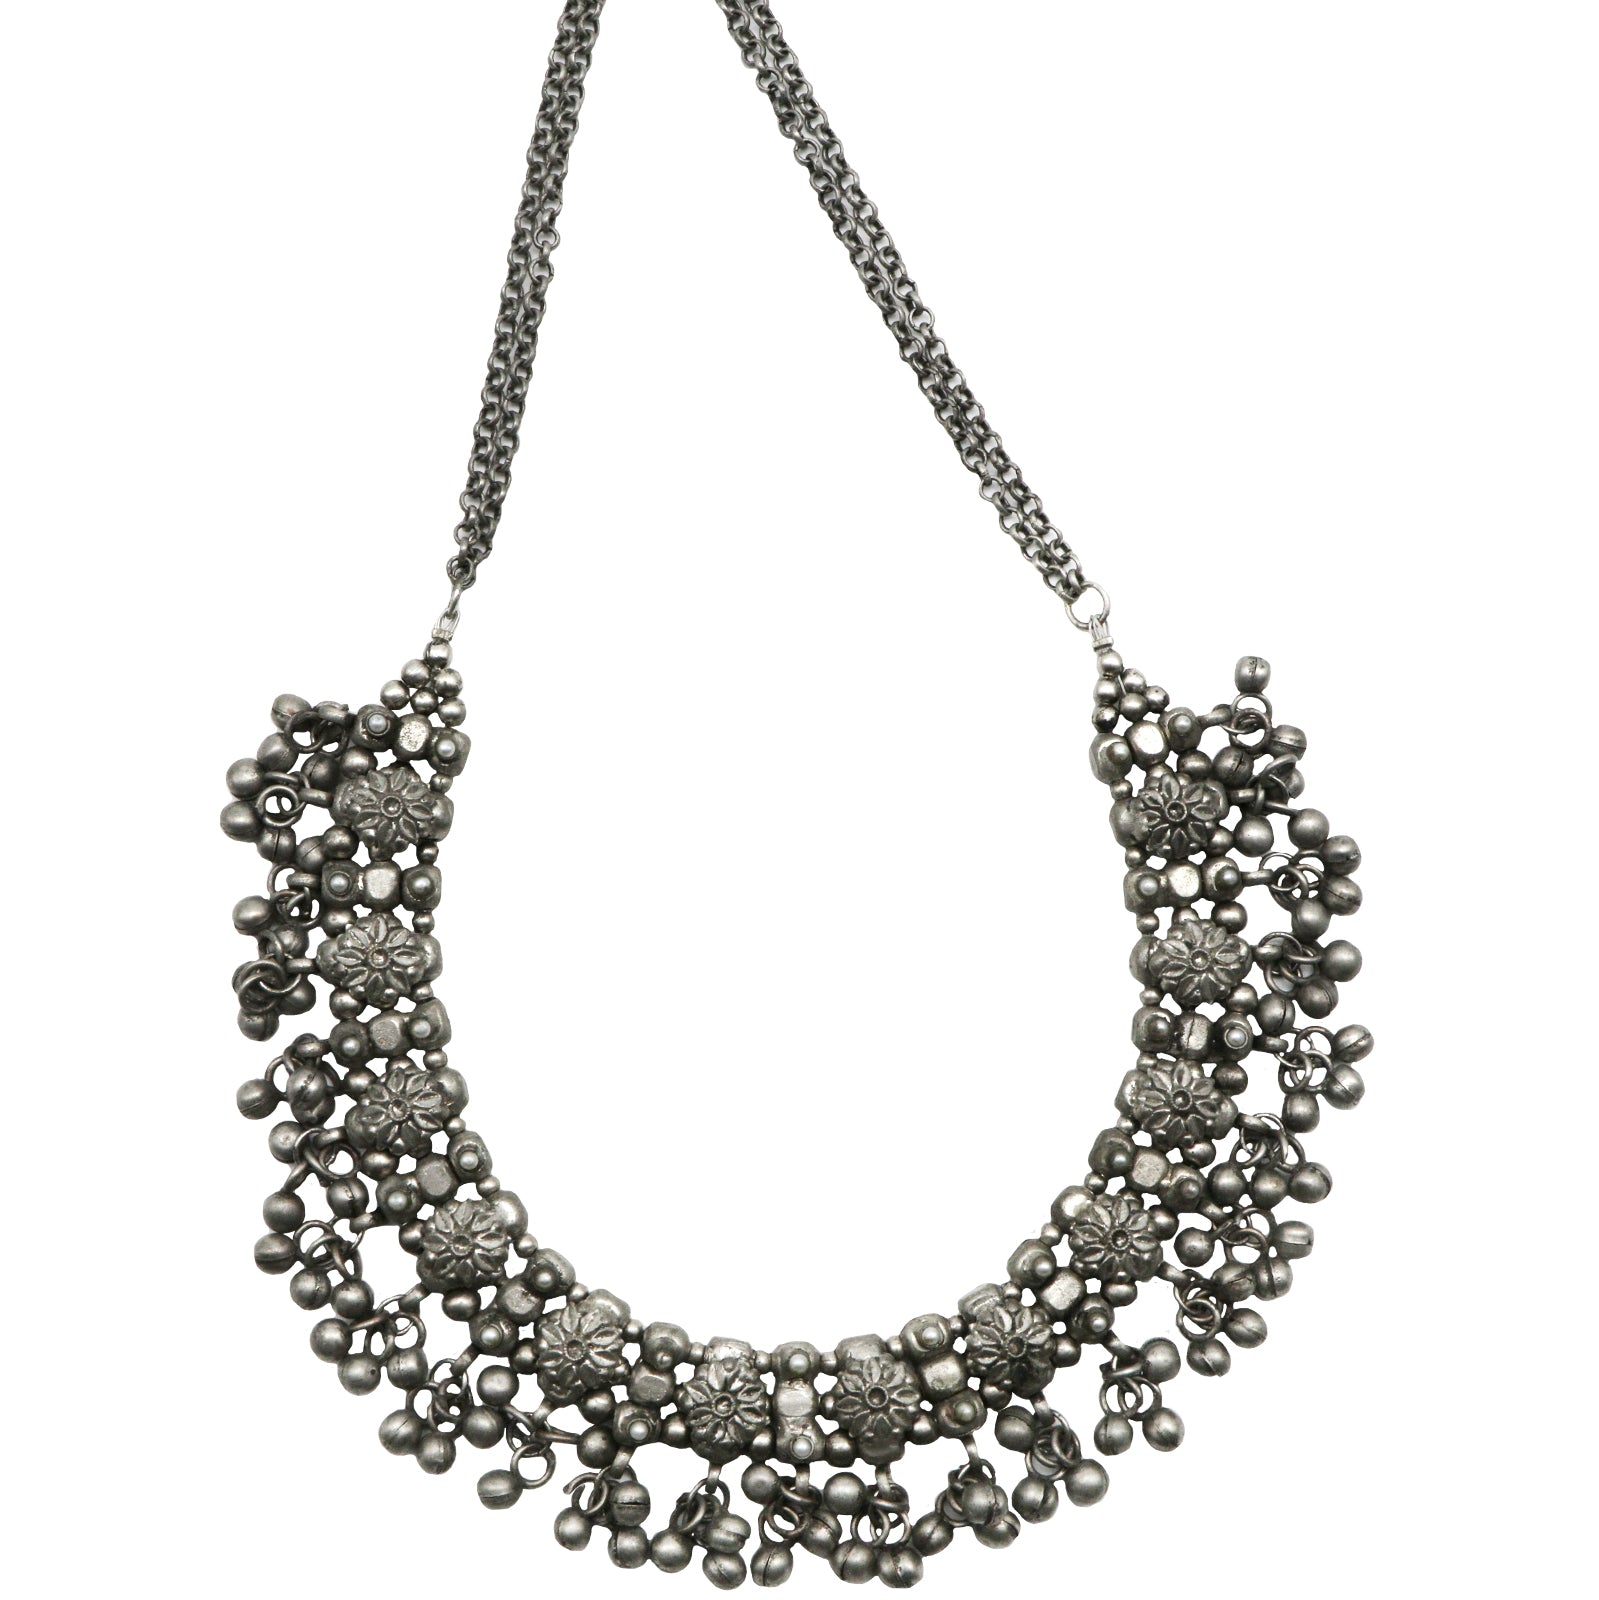 Teejh Adrija Metallic Silver Oxidized Jewelry Gift Set